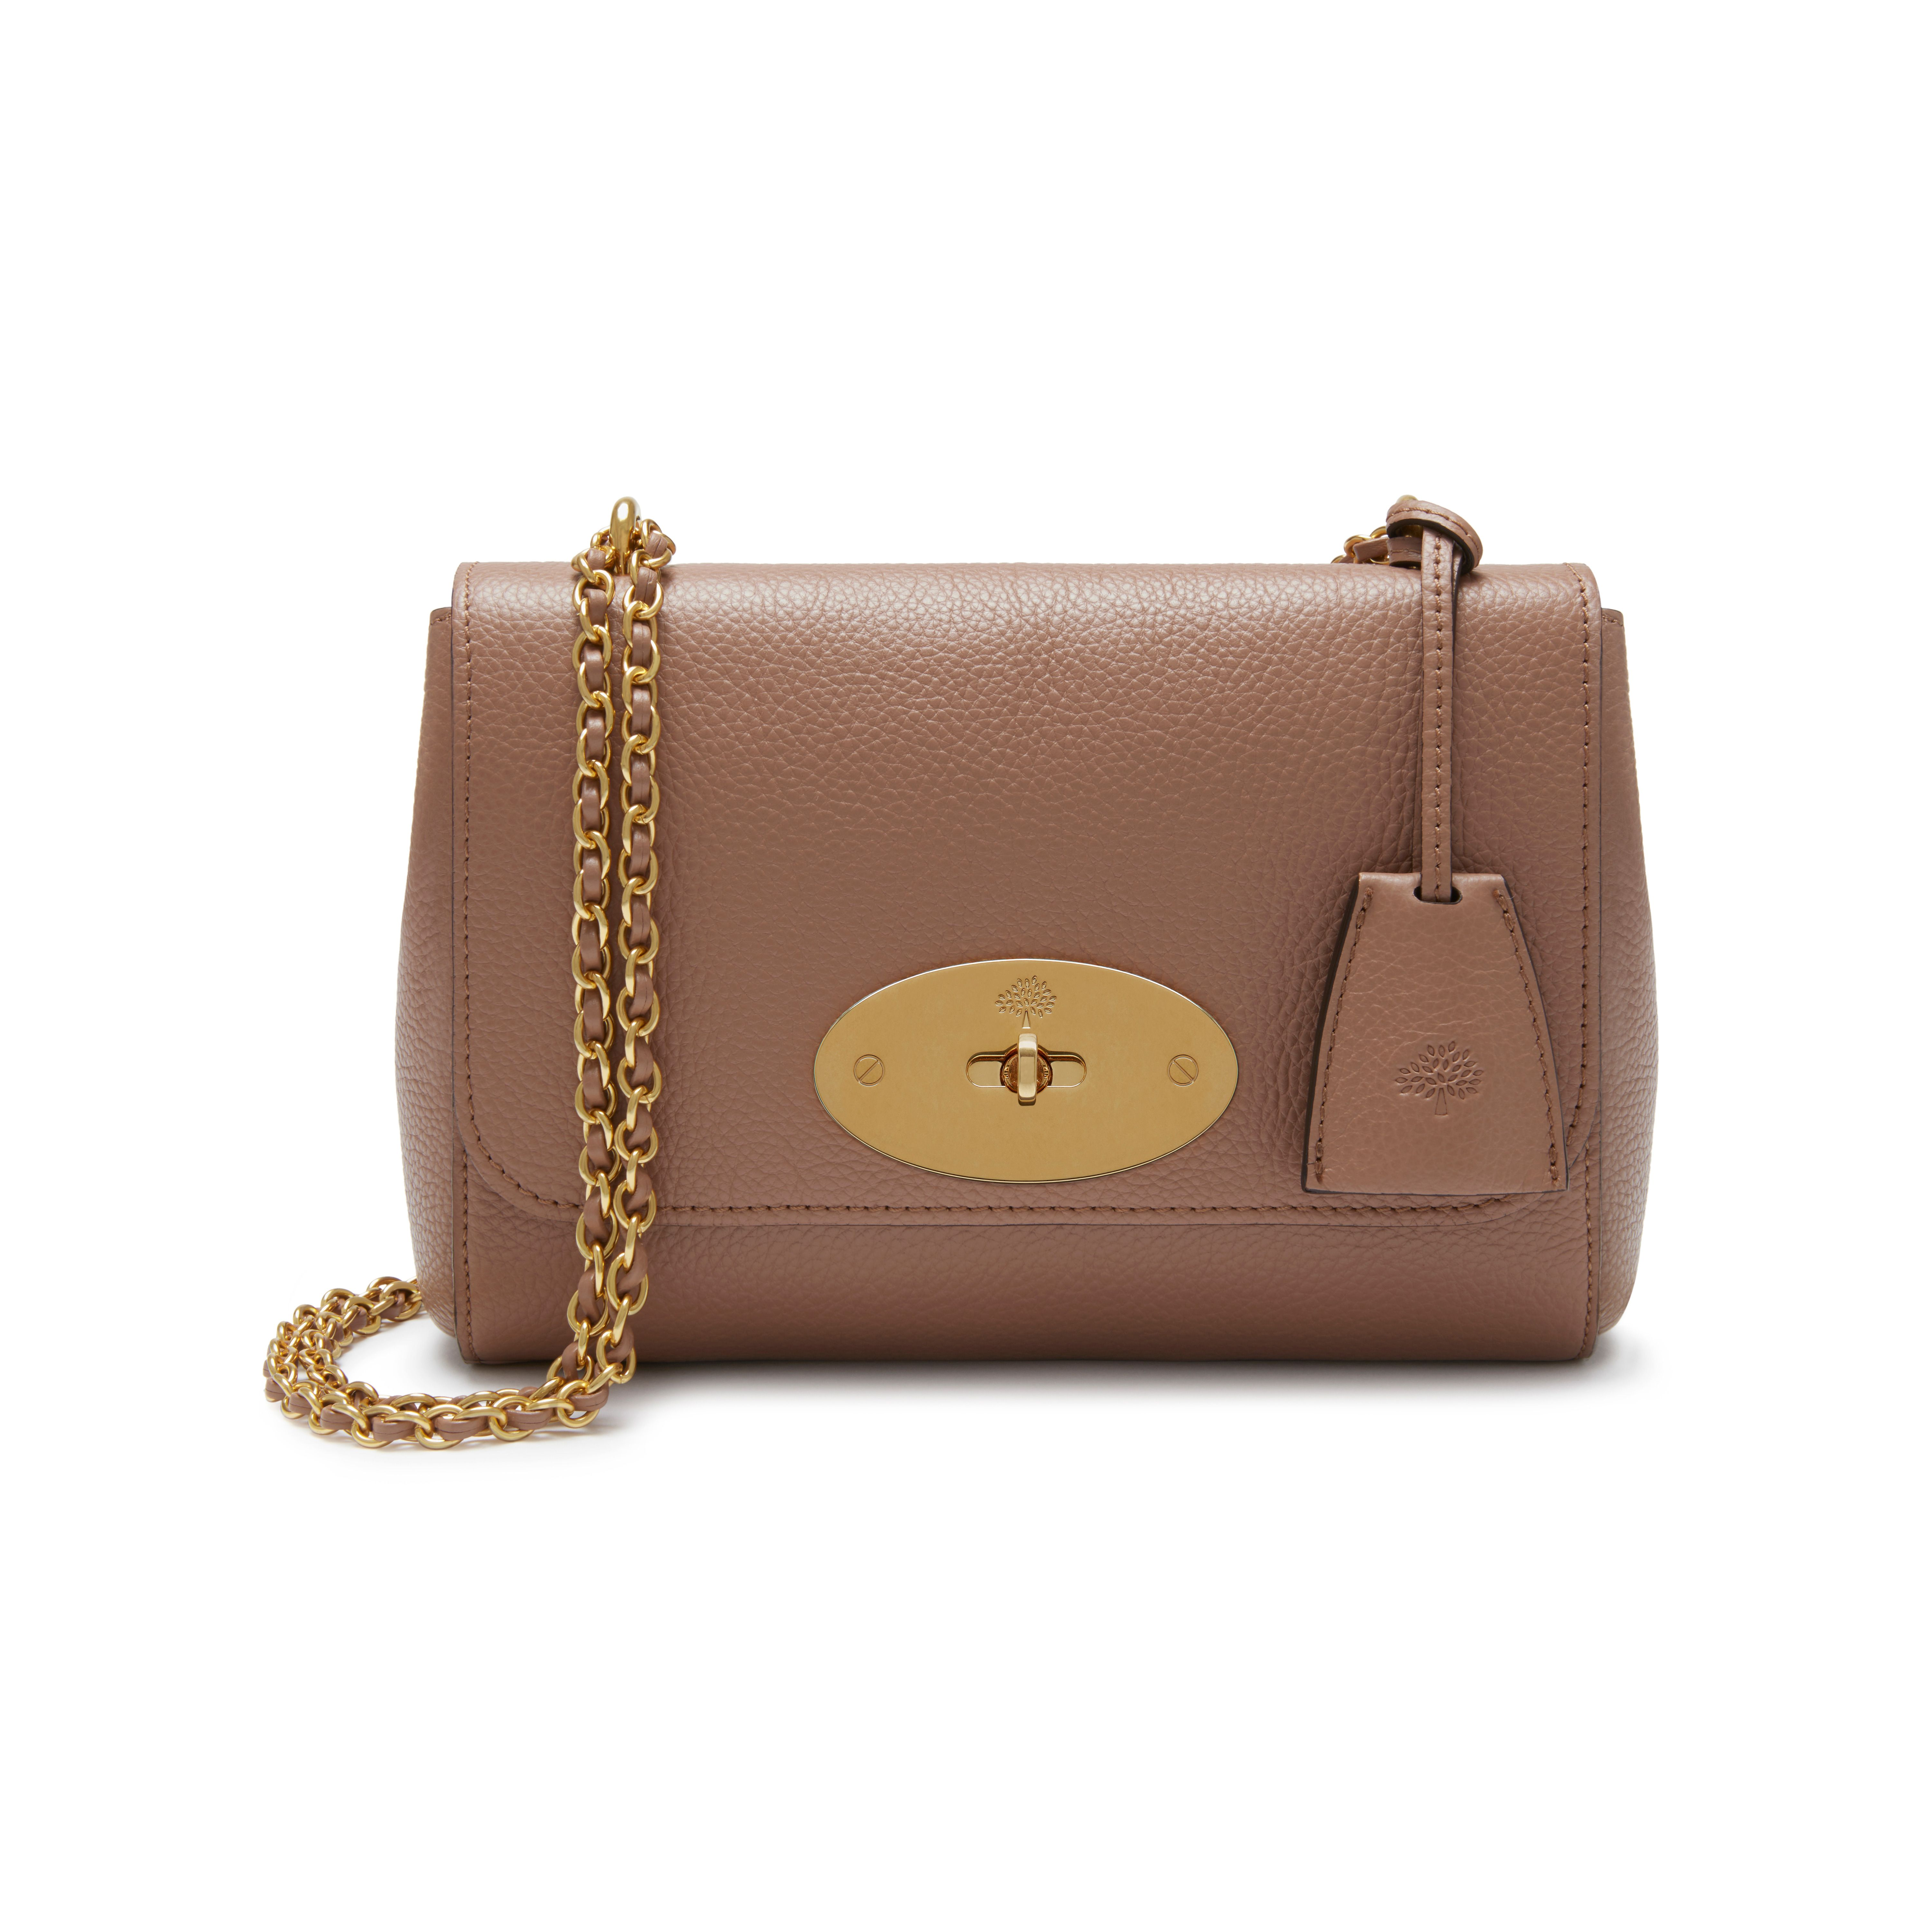 0a7298ff72cd discount image is loading mulberry purple damson tassel leather bag 1a031  b9a1c  where can i buy lily dark blush small classic grain lily mulberry  18b19 ...